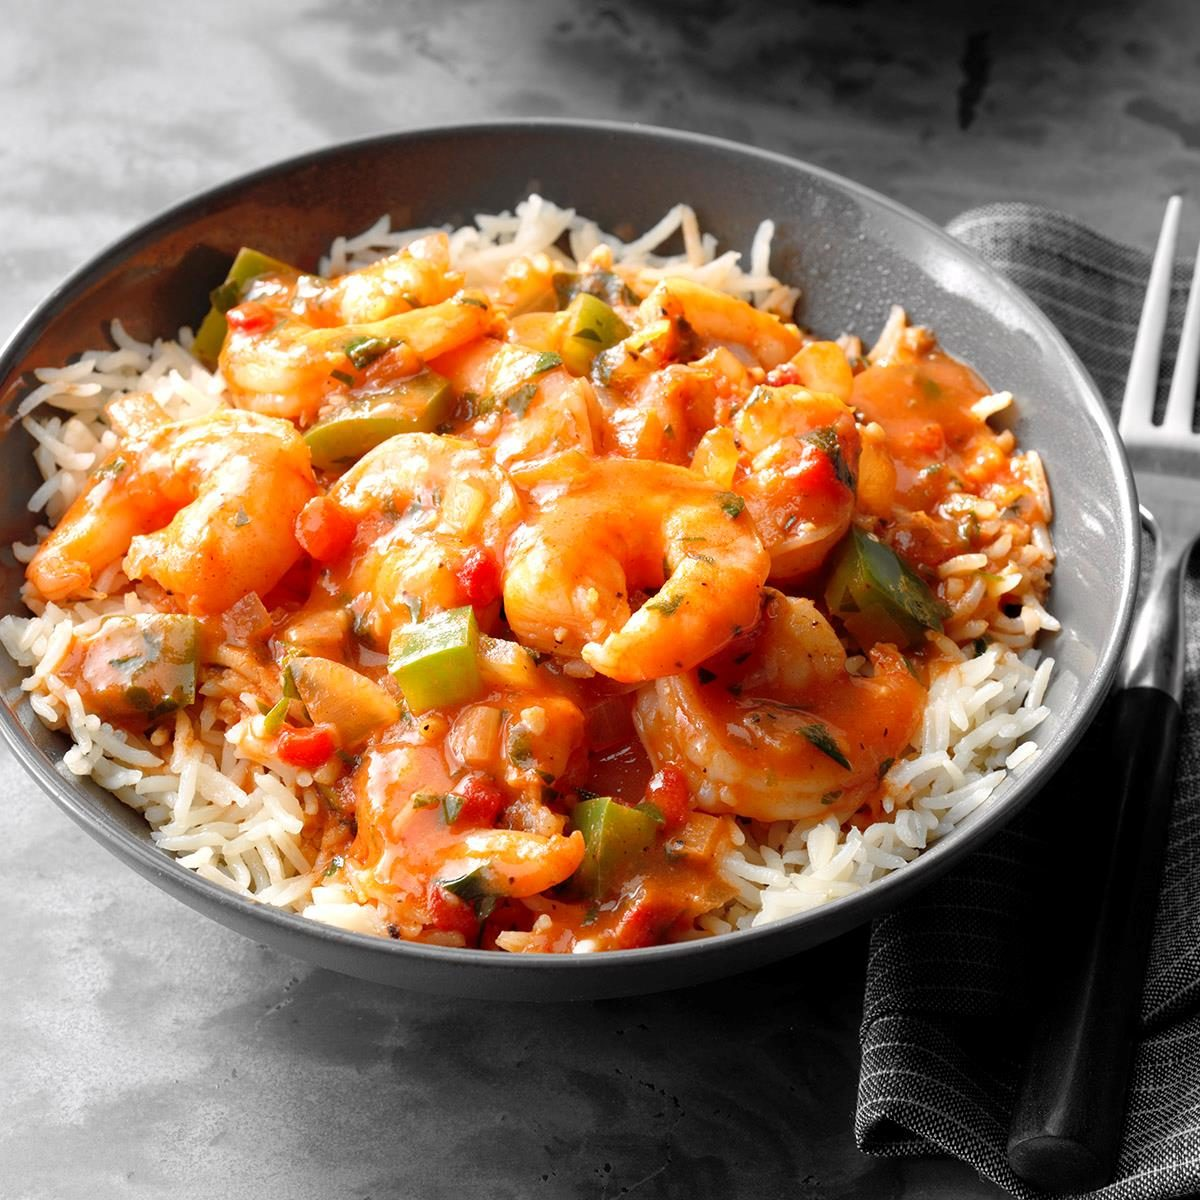 Day 23: Spicy Shrimp with Rice